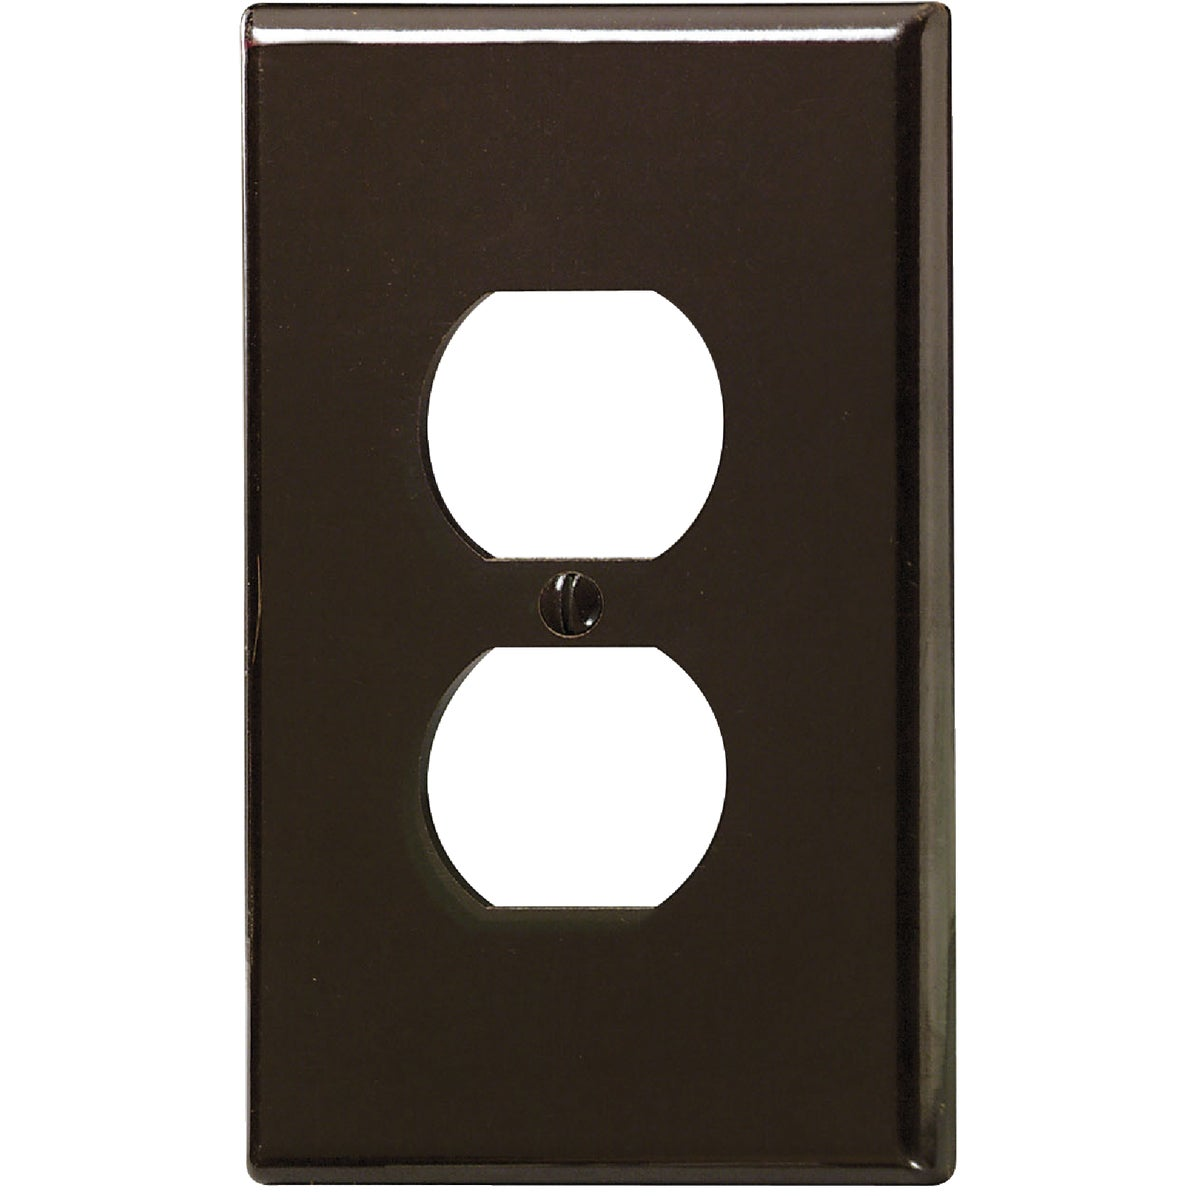 BRN DUPLEX WALL PLATE - 85103 by Leviton Mfg Co